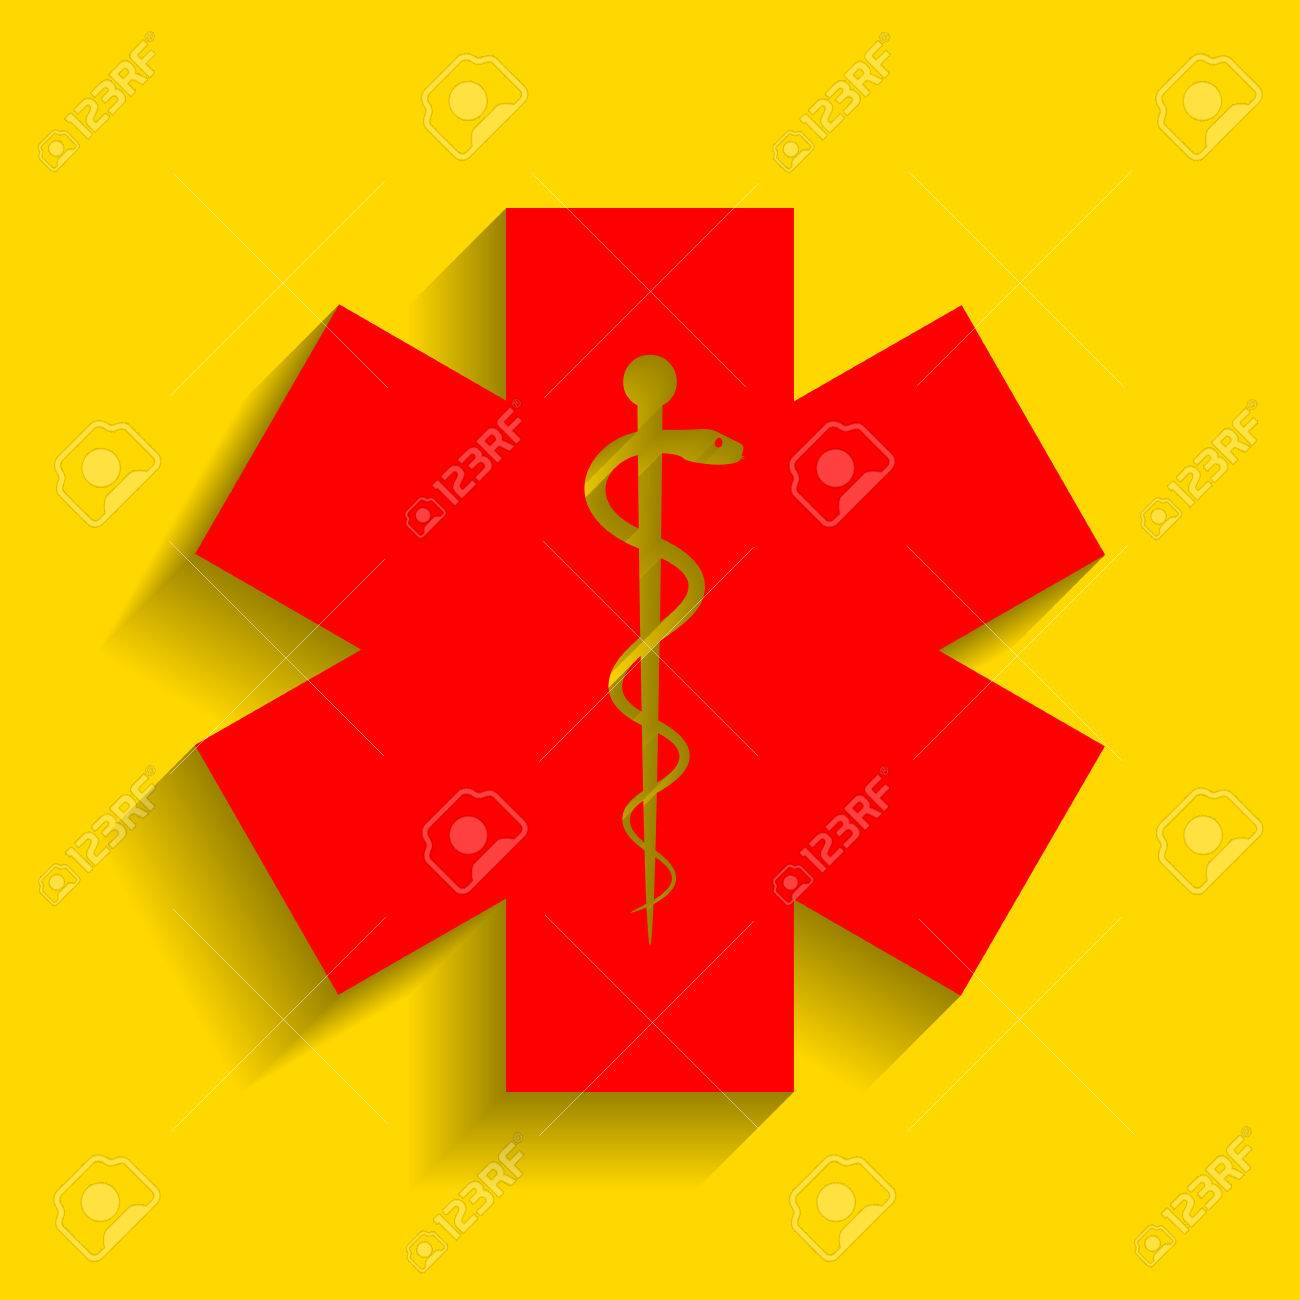 Medical Symbol Of The Emergency Or Star Of Life Vector Red